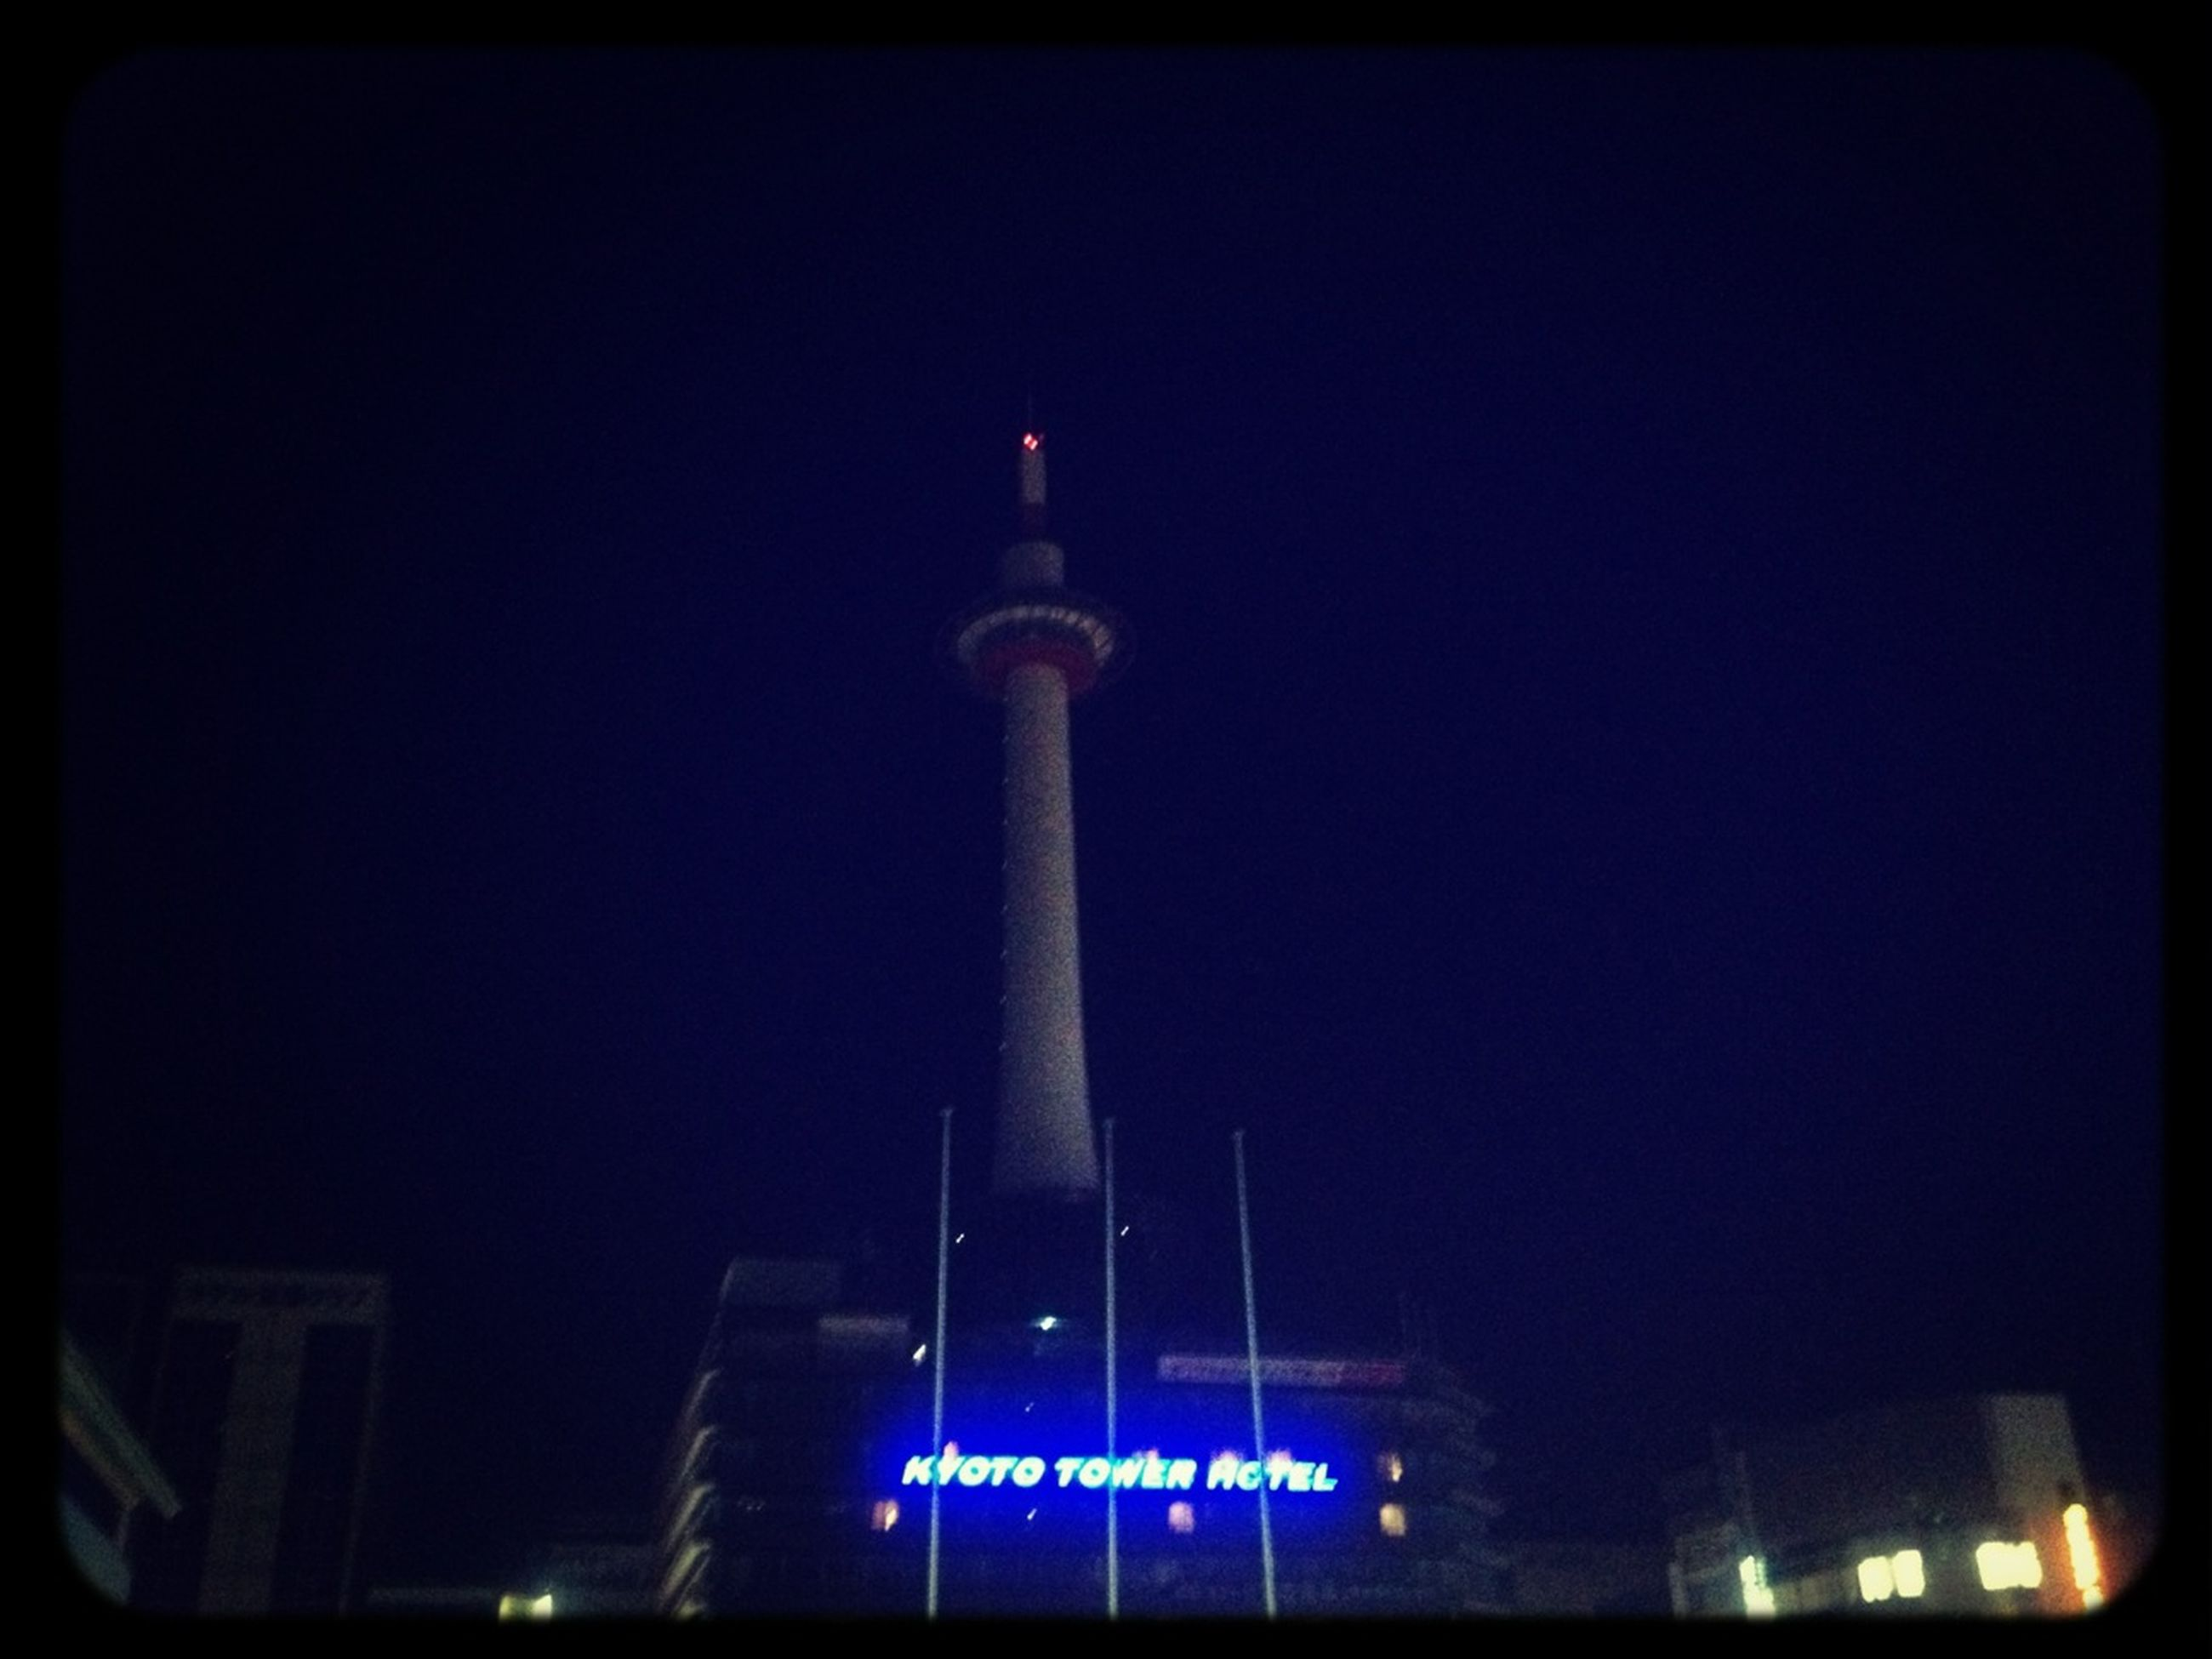 communication, low angle view, built structure, architecture, tower, illuminated, night, building exterior, communications tower, clear sky, tall - high, copy space, guidance, blue, auto post production filter, fernsehturm, transfer print, tall, city, lighting equipment